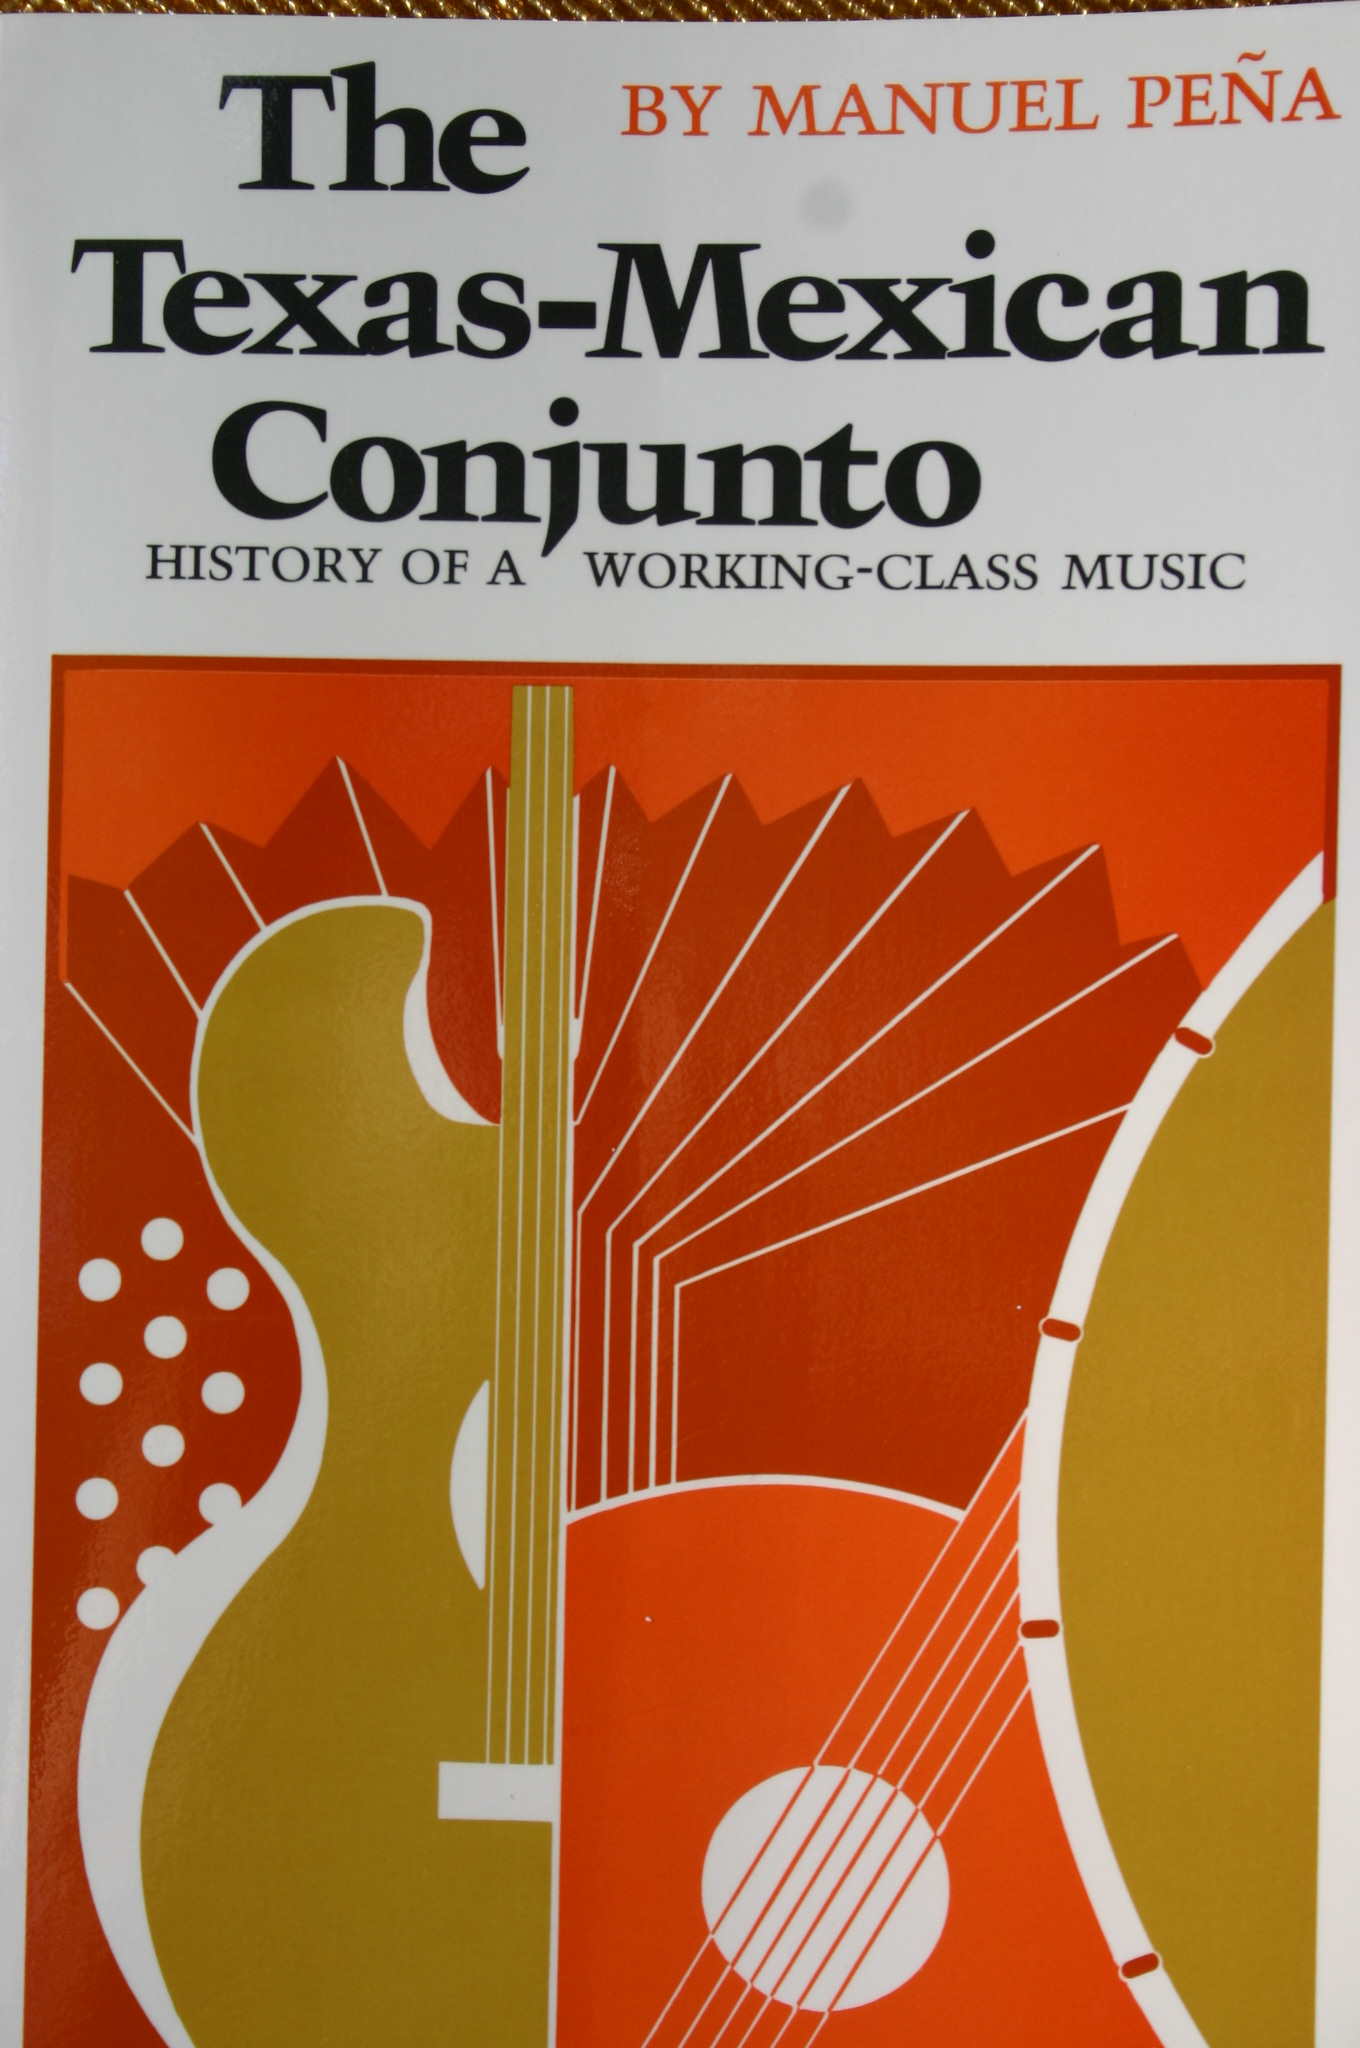 The Texas-Mexican Conjunto: History of a Working-Class Music by Manuel Pena